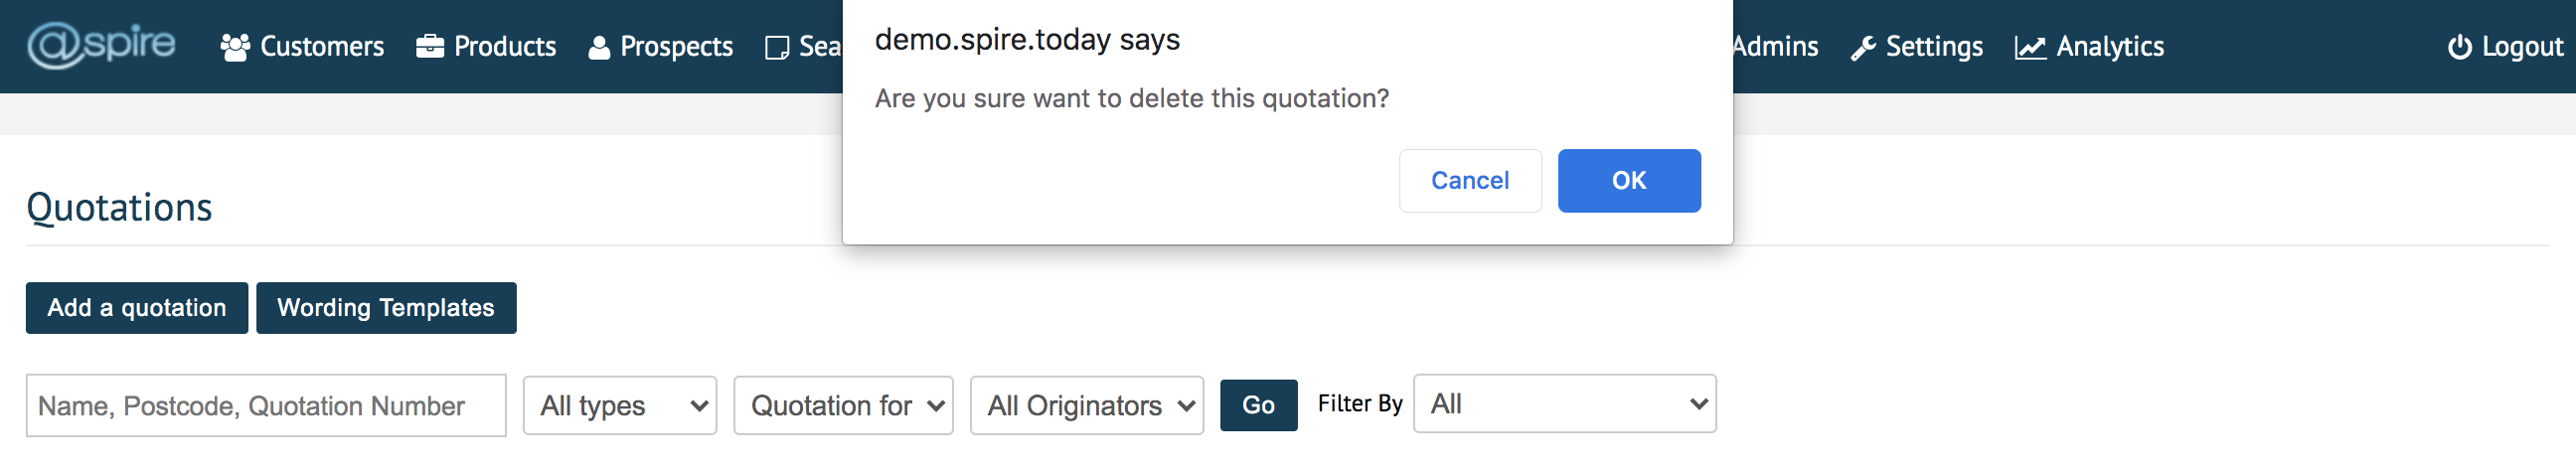 Deleting your quotation